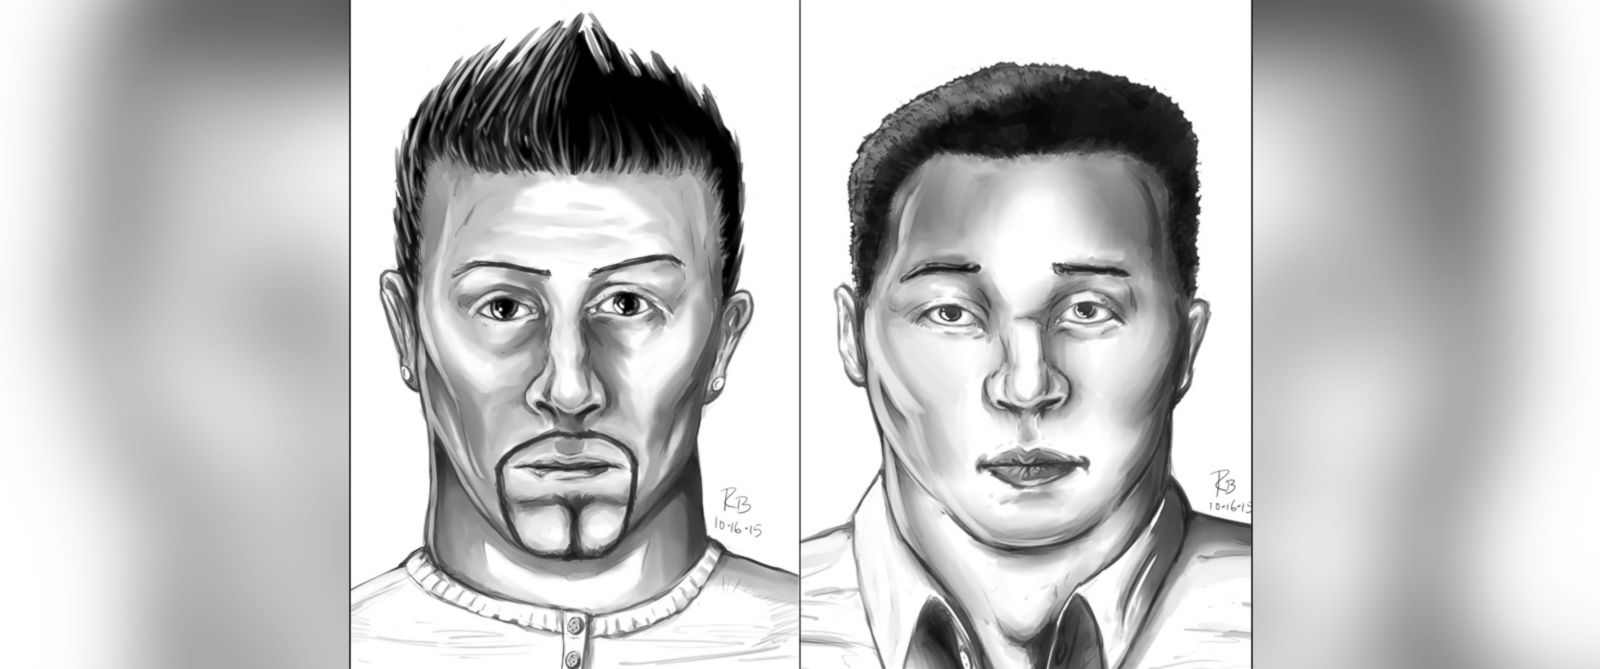 PHOTO: The Sacramento Police Department released two composite sketches depicting what the suspects in the stabbing of Spencer Stone are believed to look like.